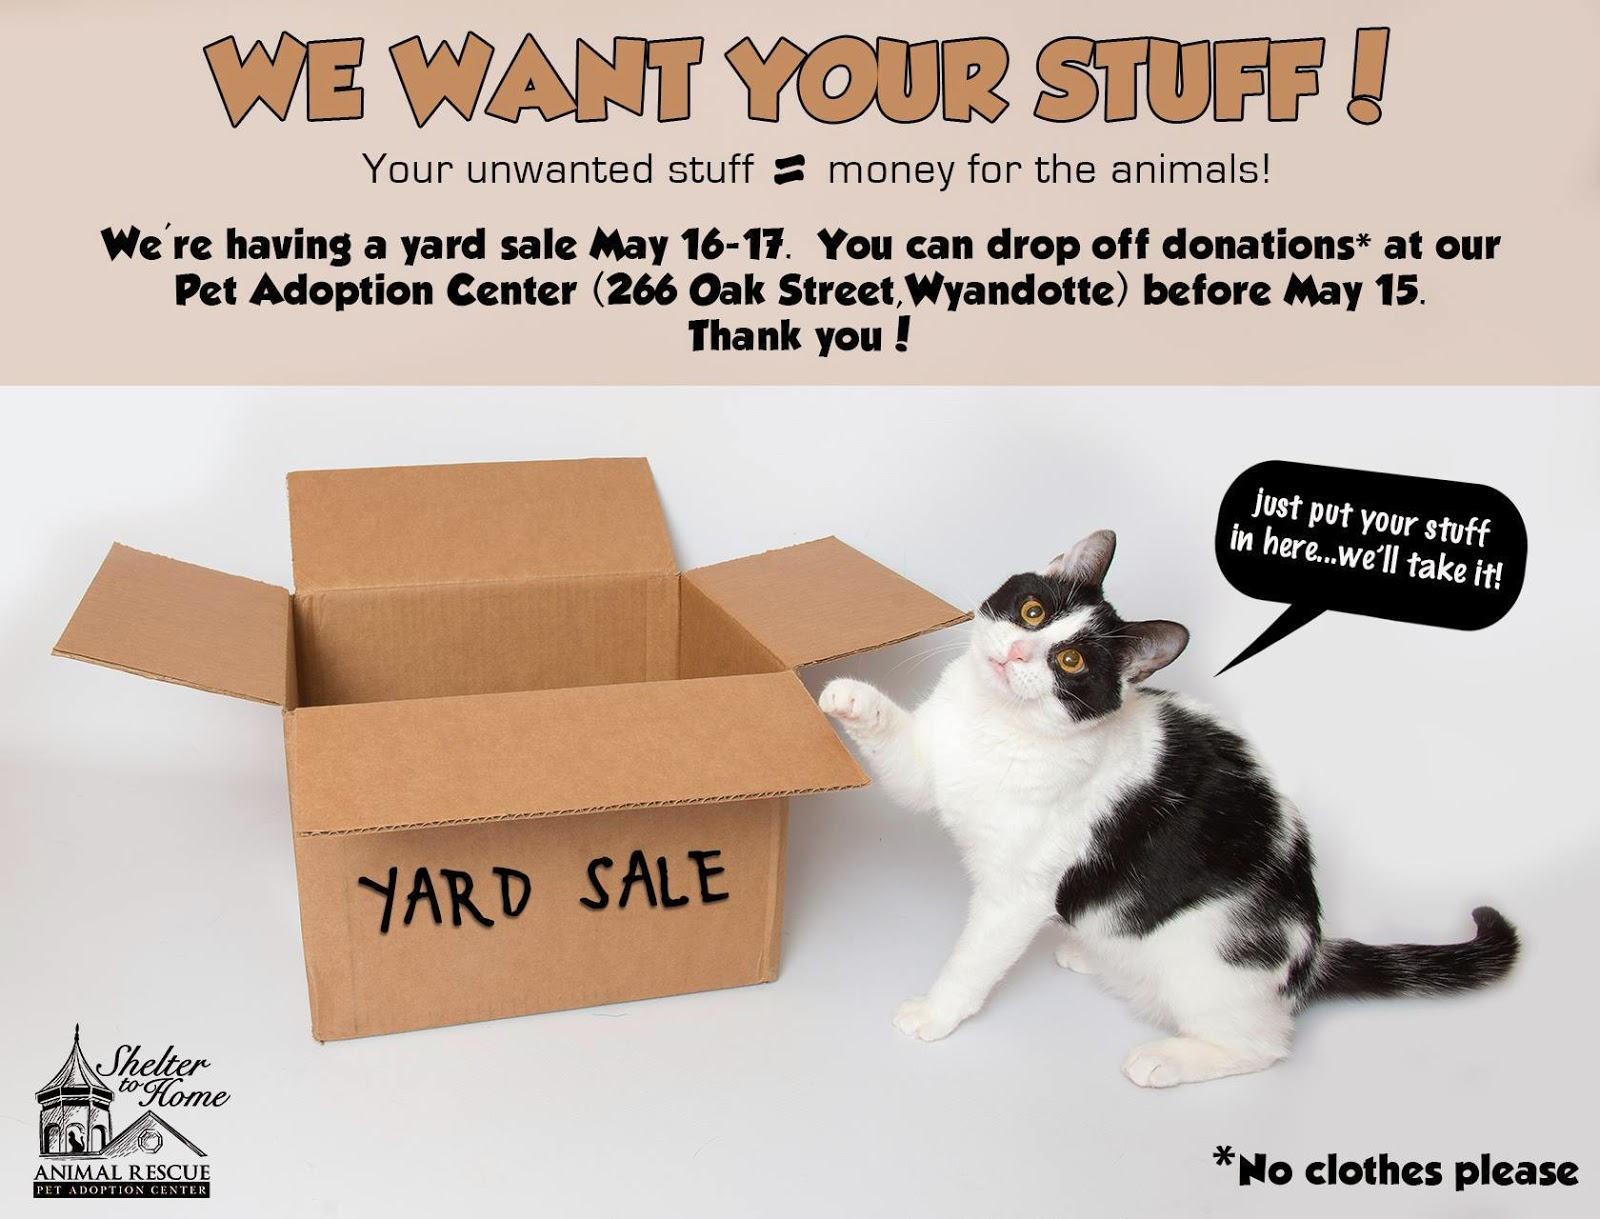 We're having a yard sale May 16-17. We want your stuff! You can drop off donations at our Pet Adoption Center before May 15th.